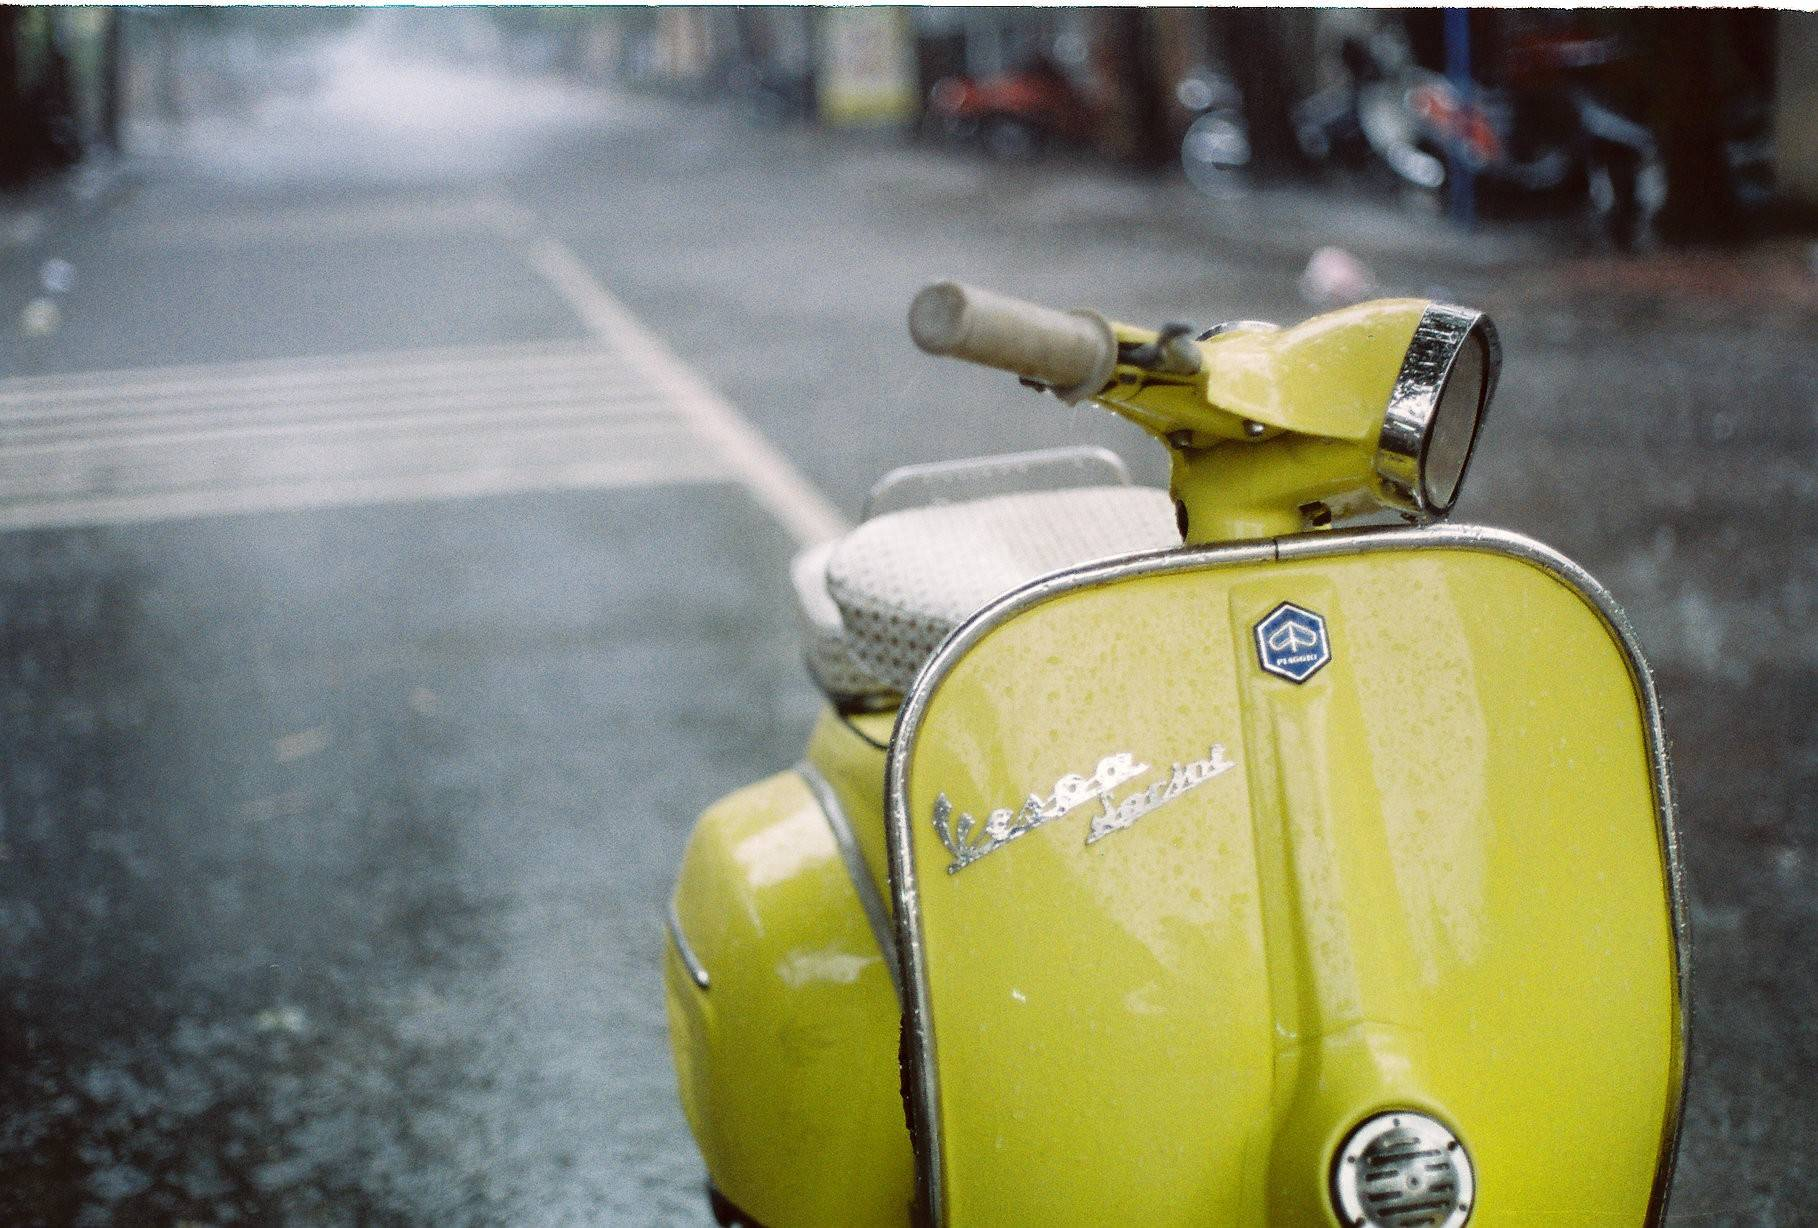 Vespa Scooter 1974 Wallpapers 1298 Hi-Resolution | Best Free JPG